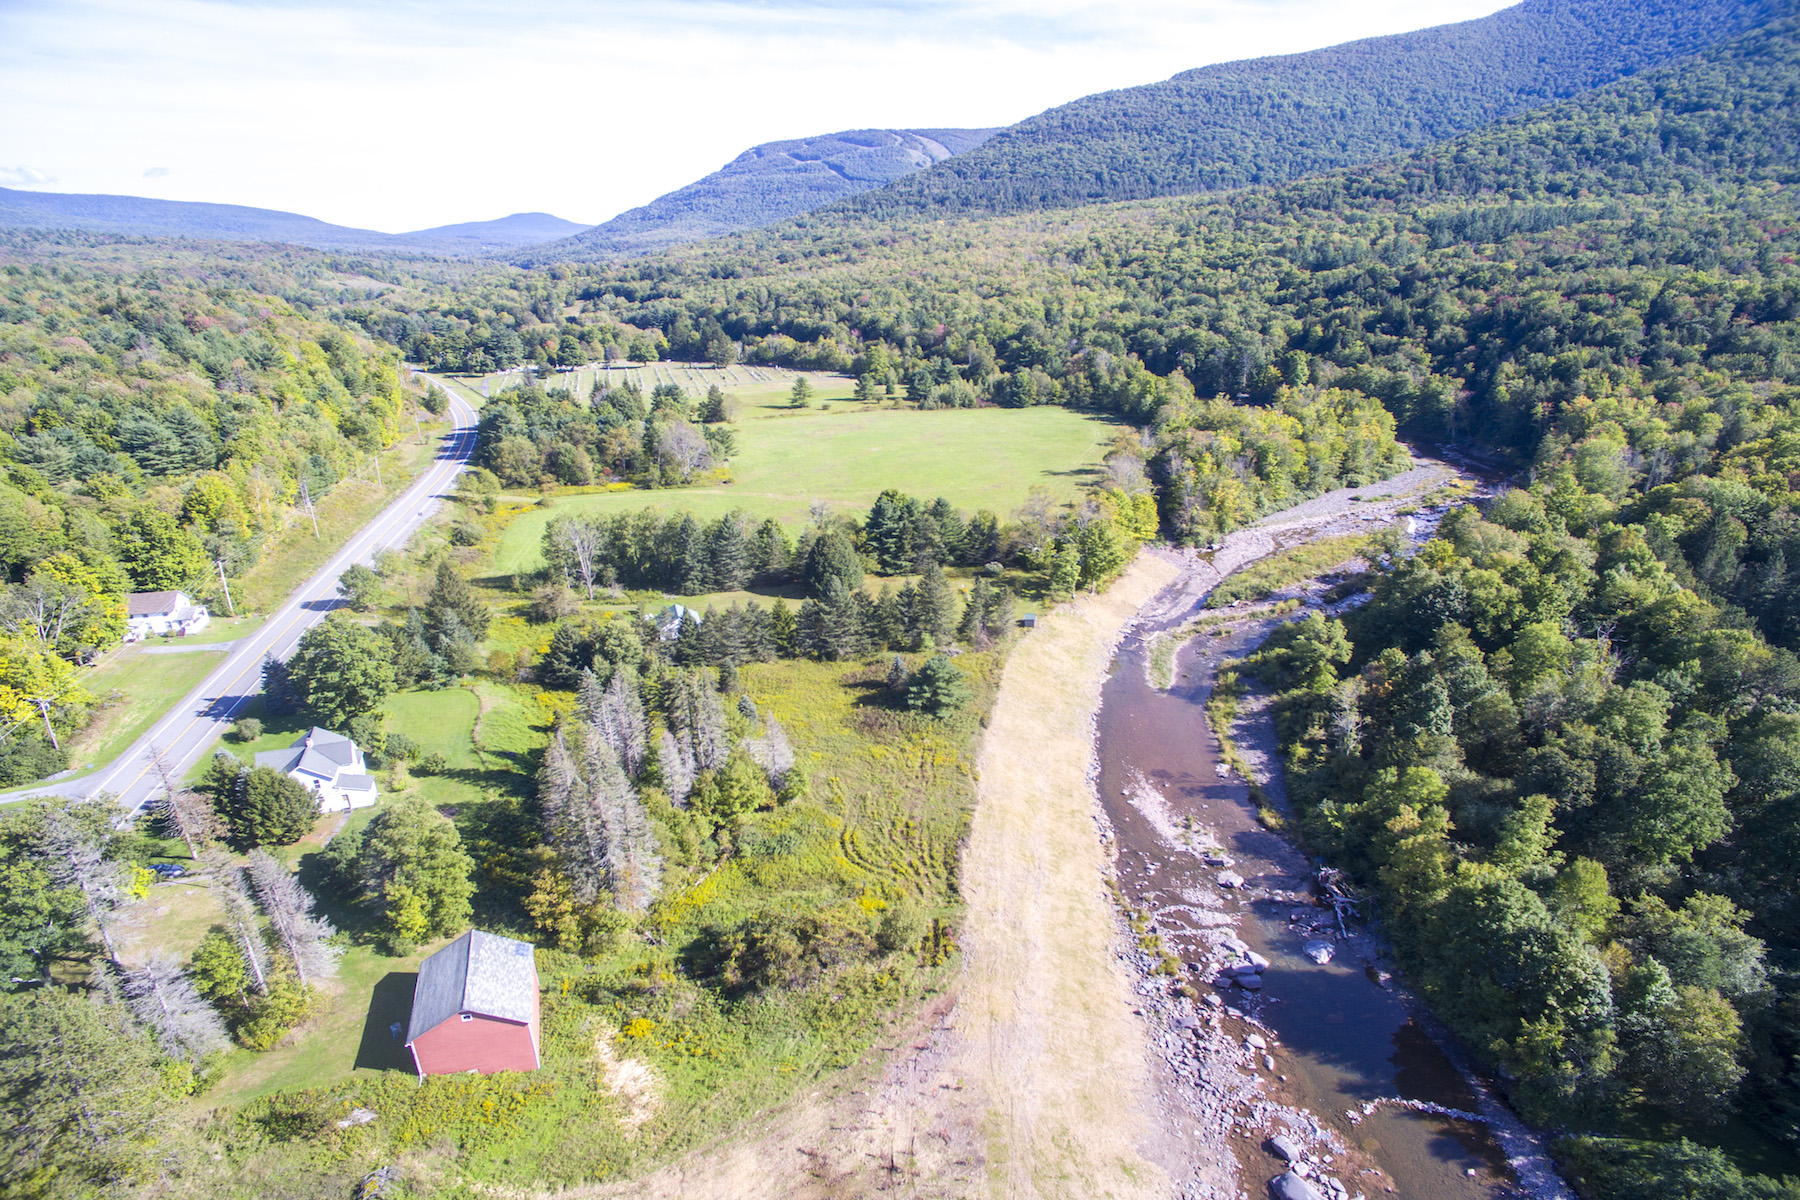 独户住宅 为 销售 在 Farm House With Incredible View of Schoharie Creek 9093 Route 23a Jewett, 纽约州 12444 美国